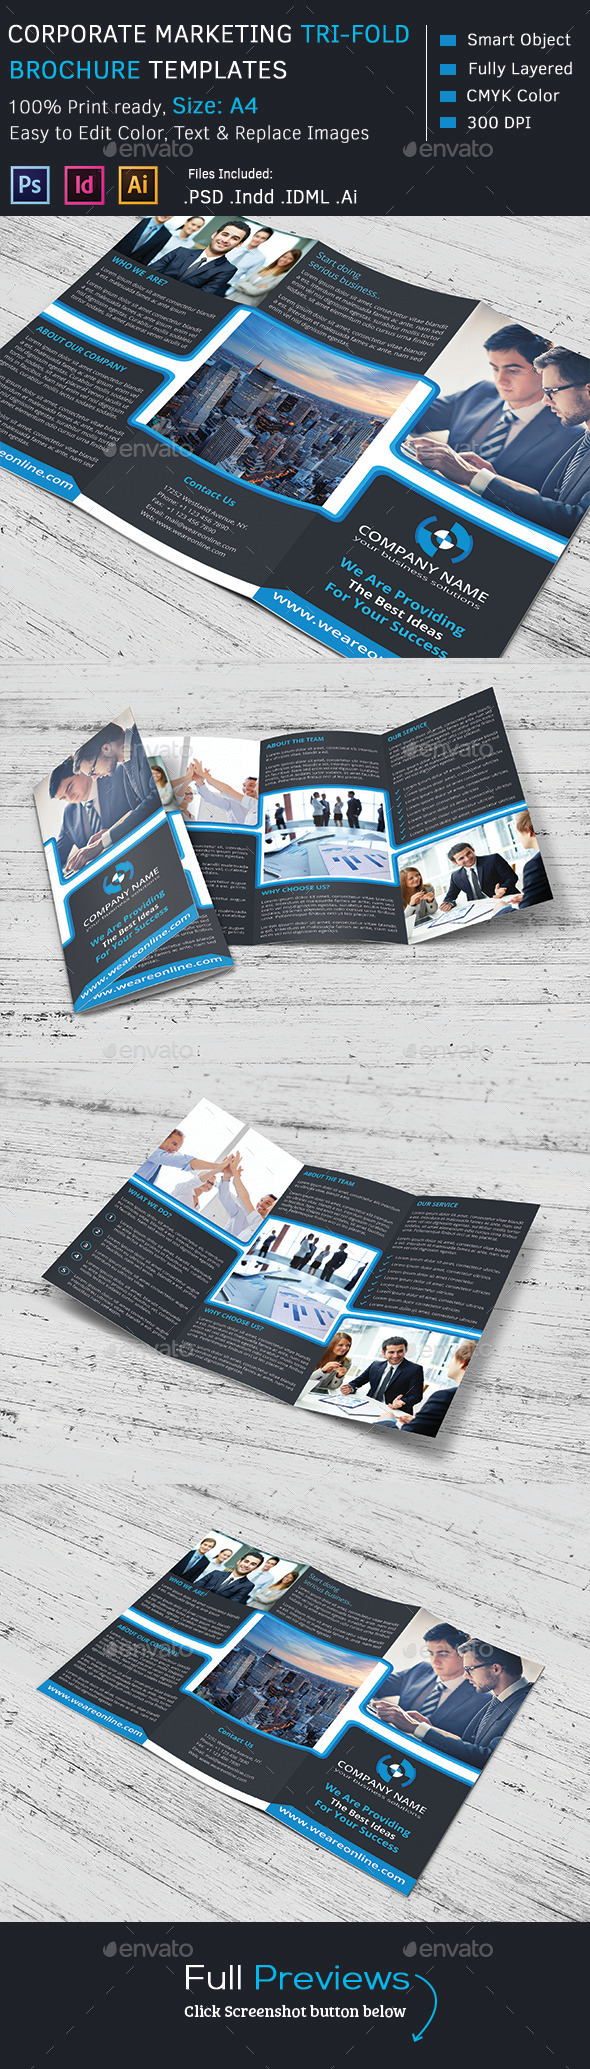 GraphicRiver Corporate Marketing Tri-Fold Brochure 9134925